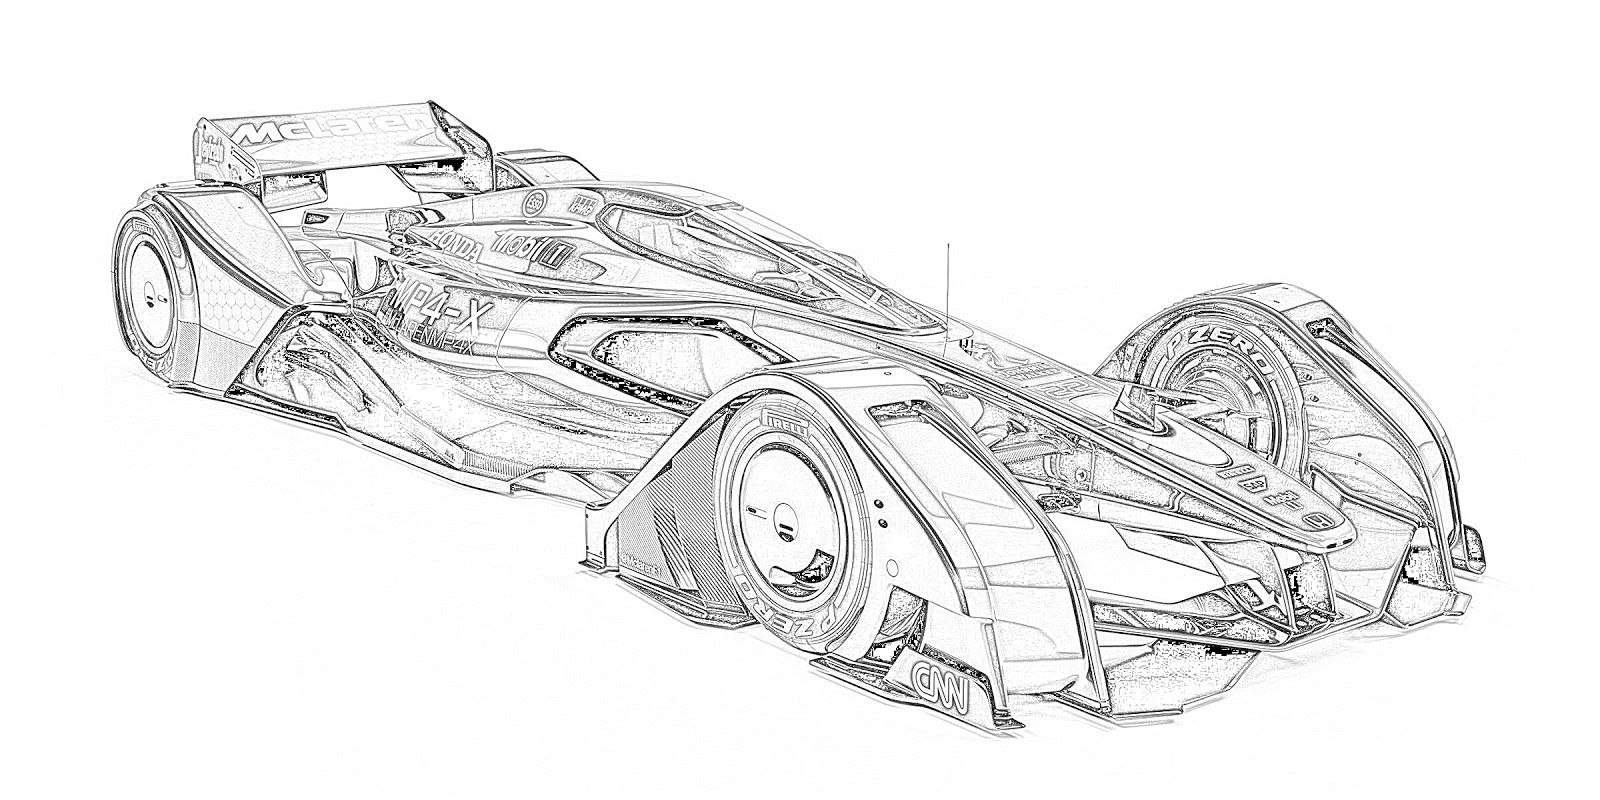 racecar coloring page race car coloring pages coloring pages for kids racecar coloring page